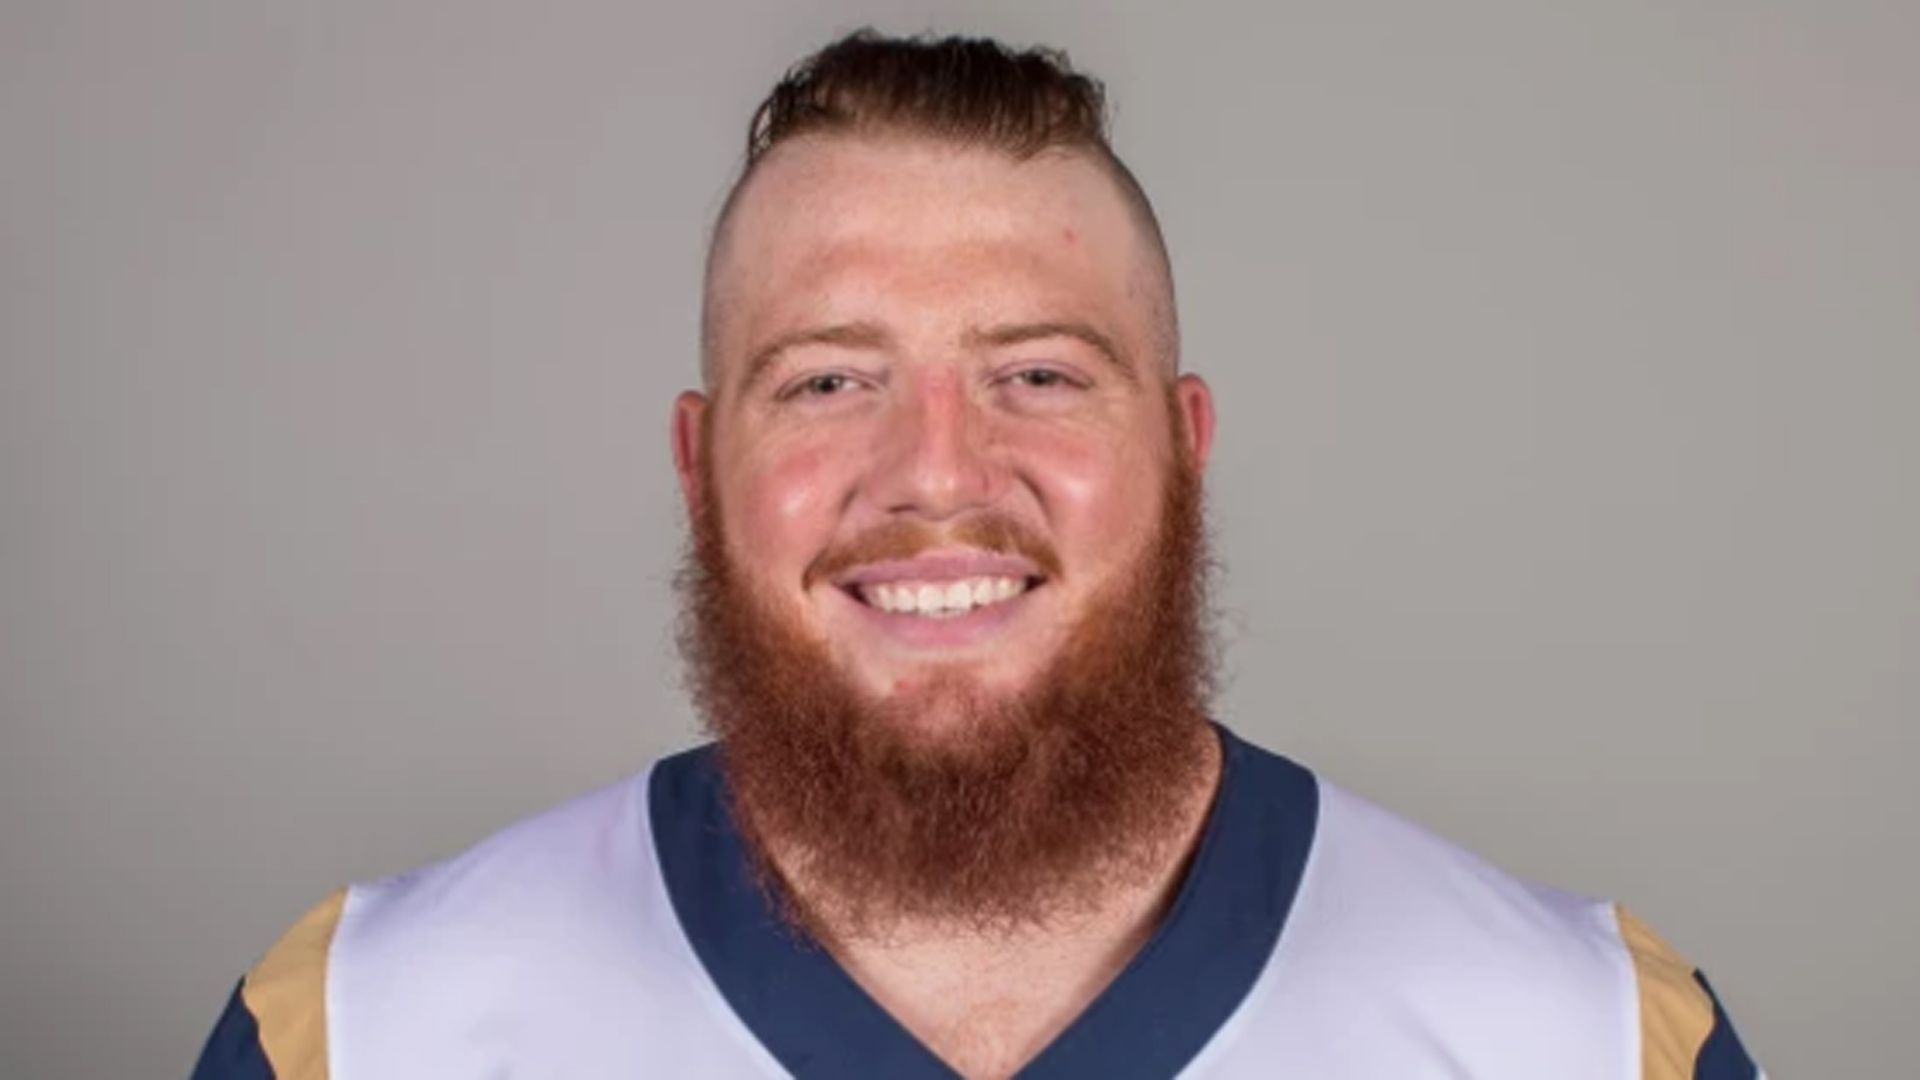 Aaron Neary is shown in an official portrait on the Los Angeles Rams website.